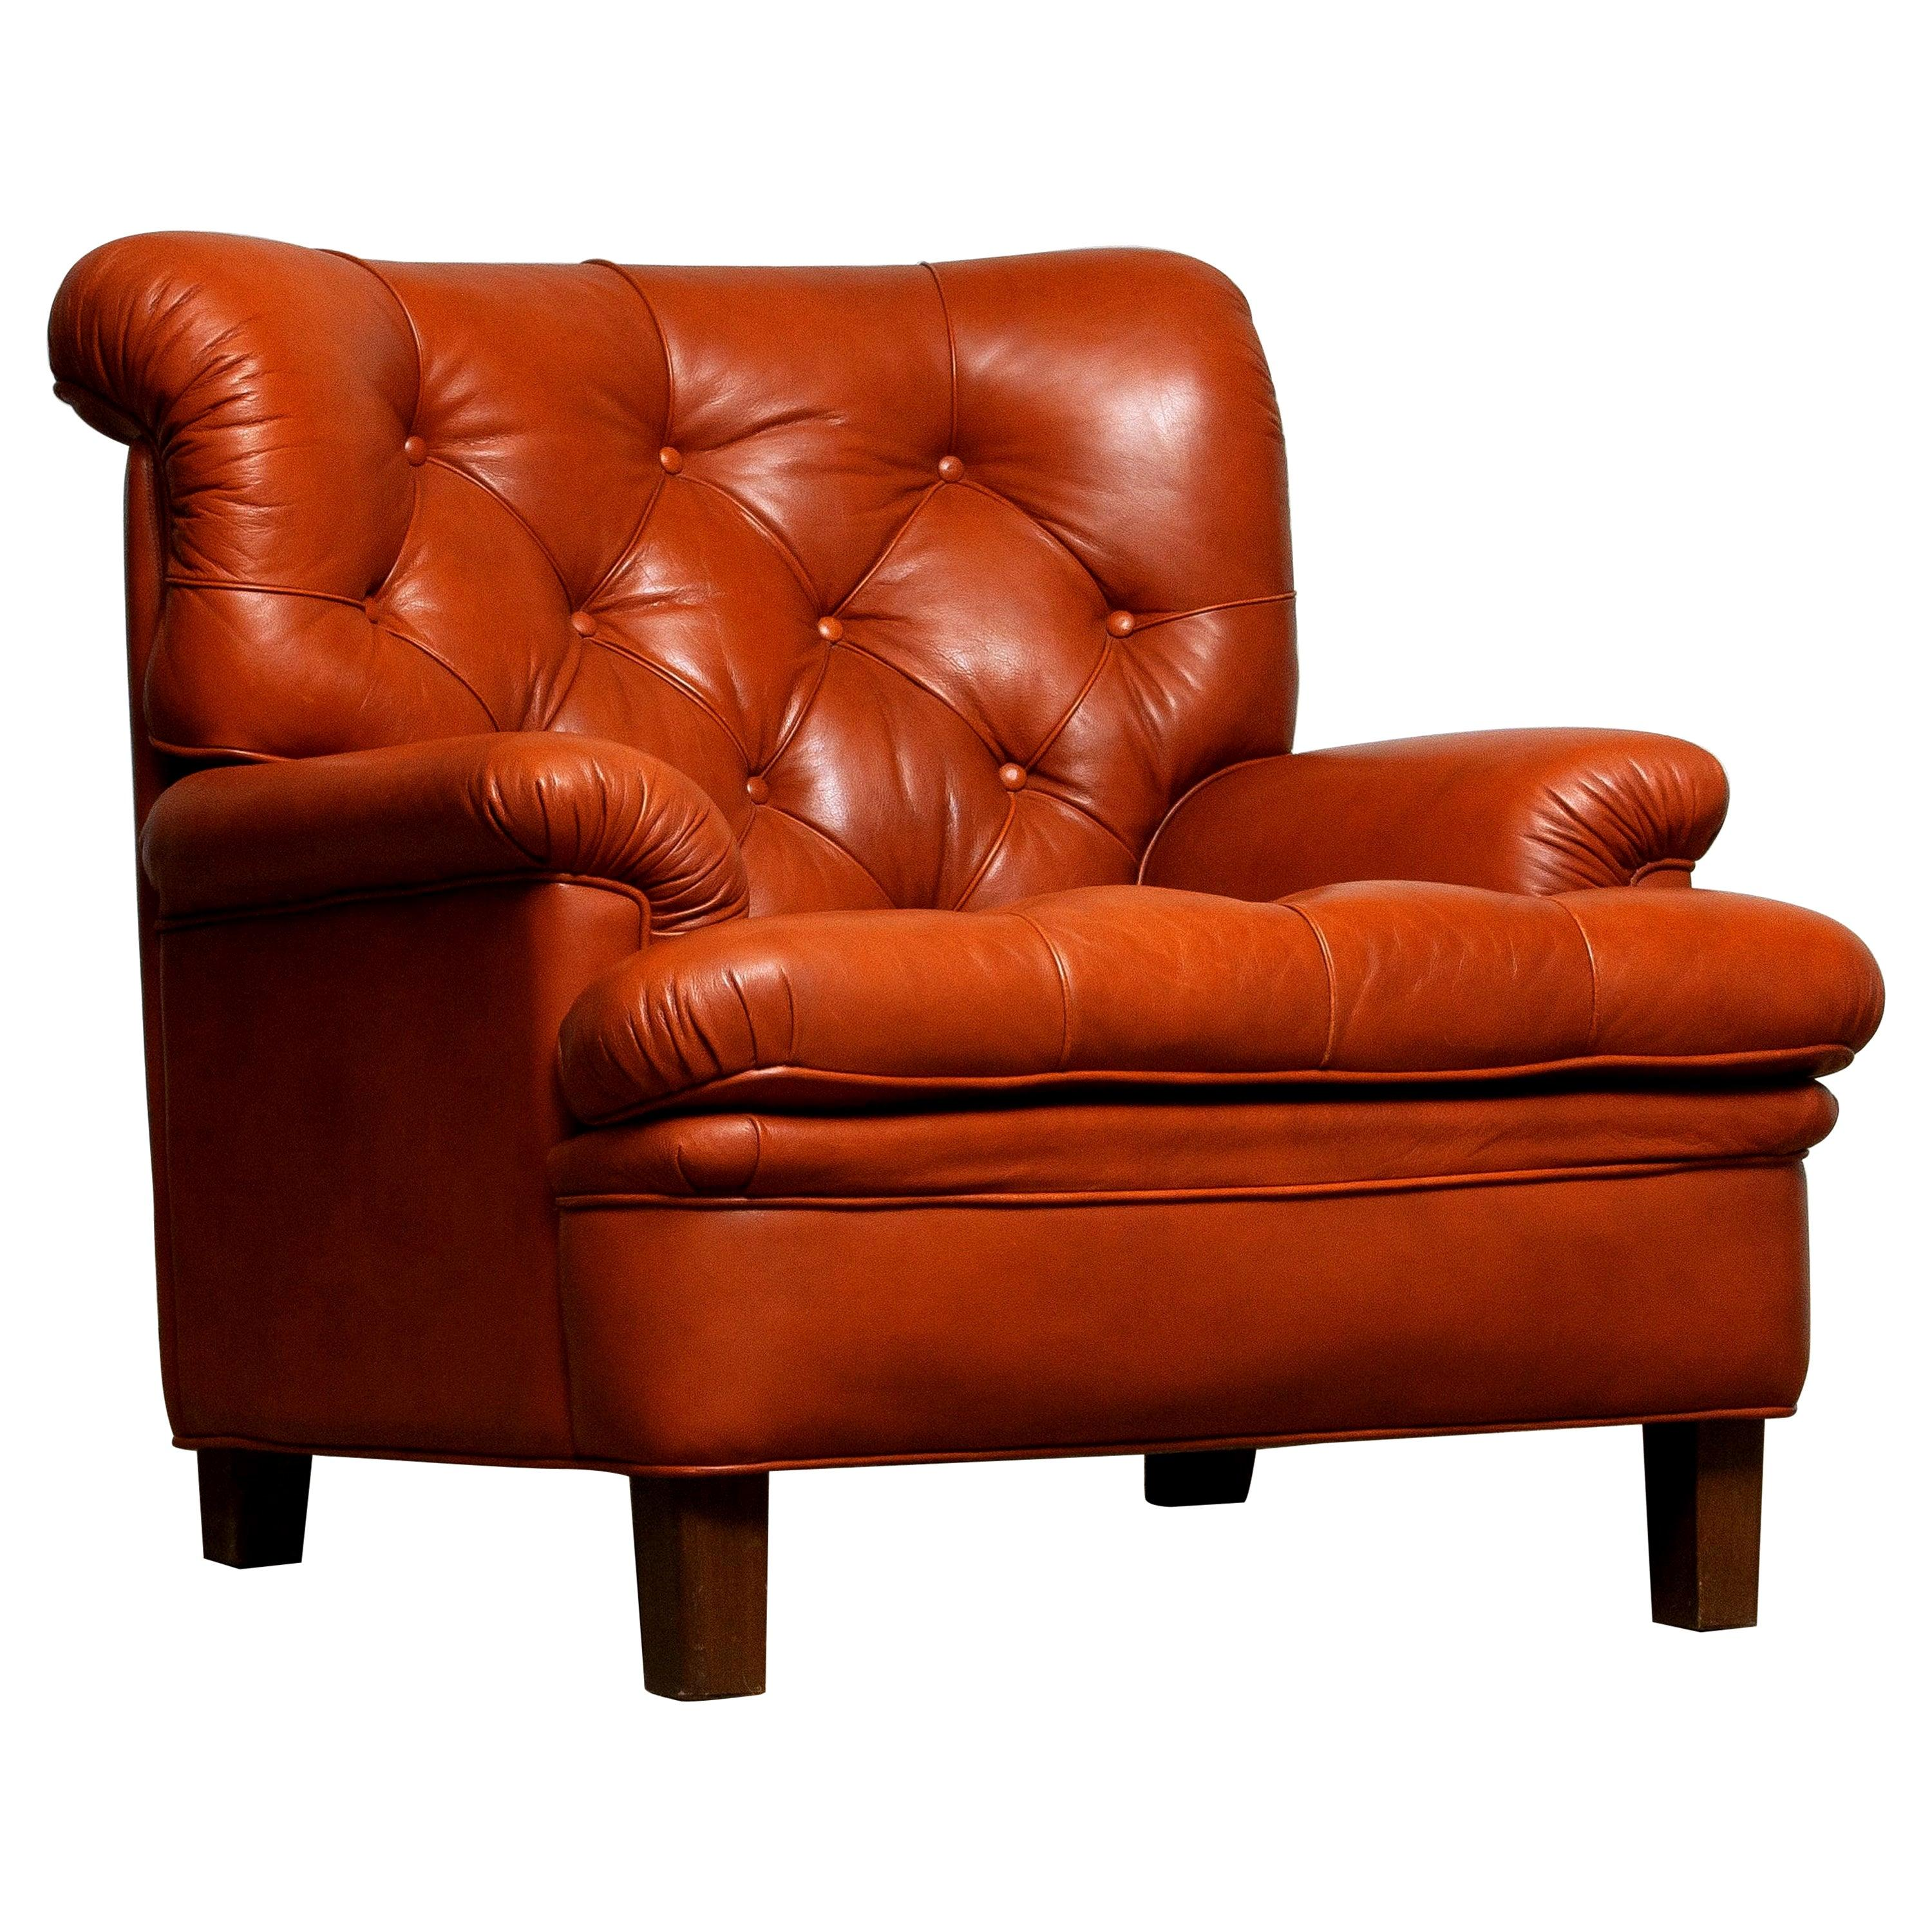 1960s Brique Quilted Leather Chesterfield Armchair by Arne Norell, Model Jupiter